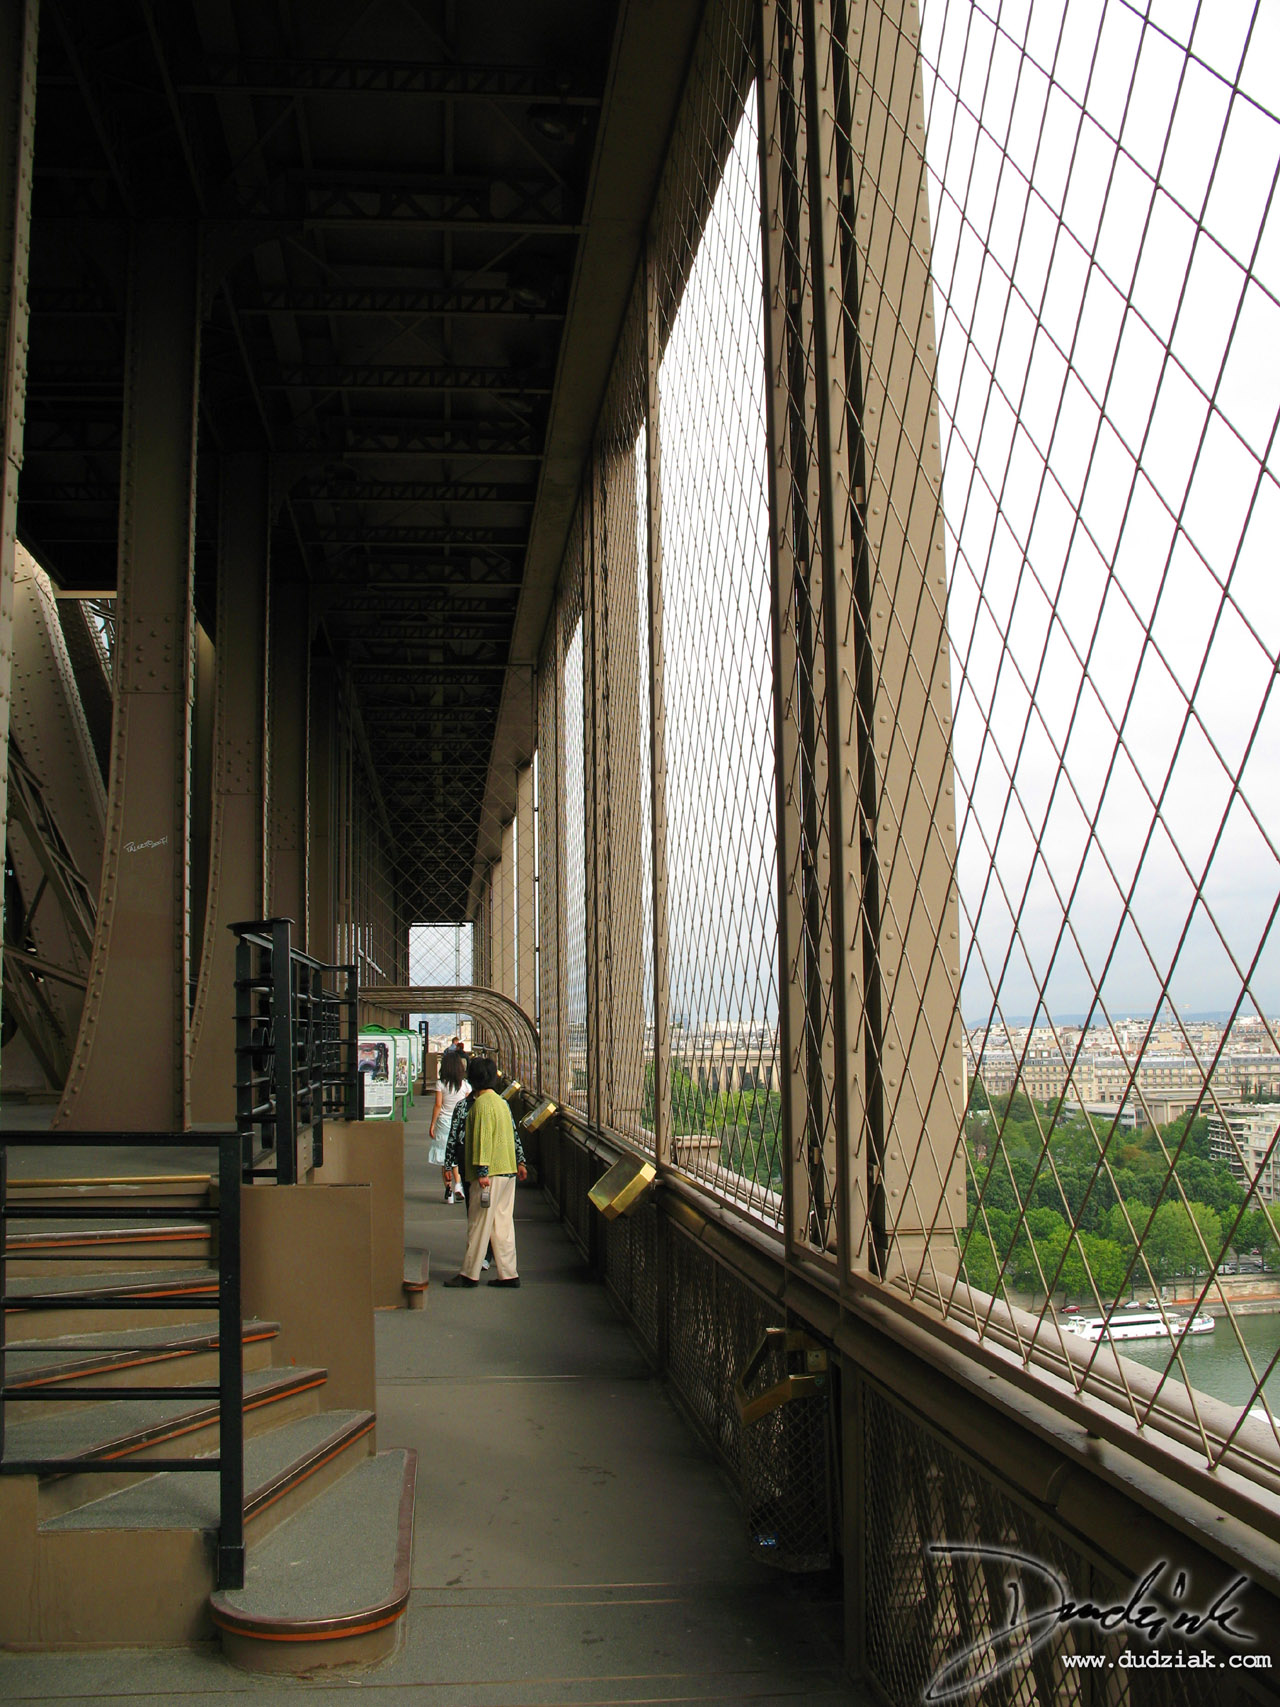 Tour Eiffel,  First floor,  view,  paris,  Eiffel Tower